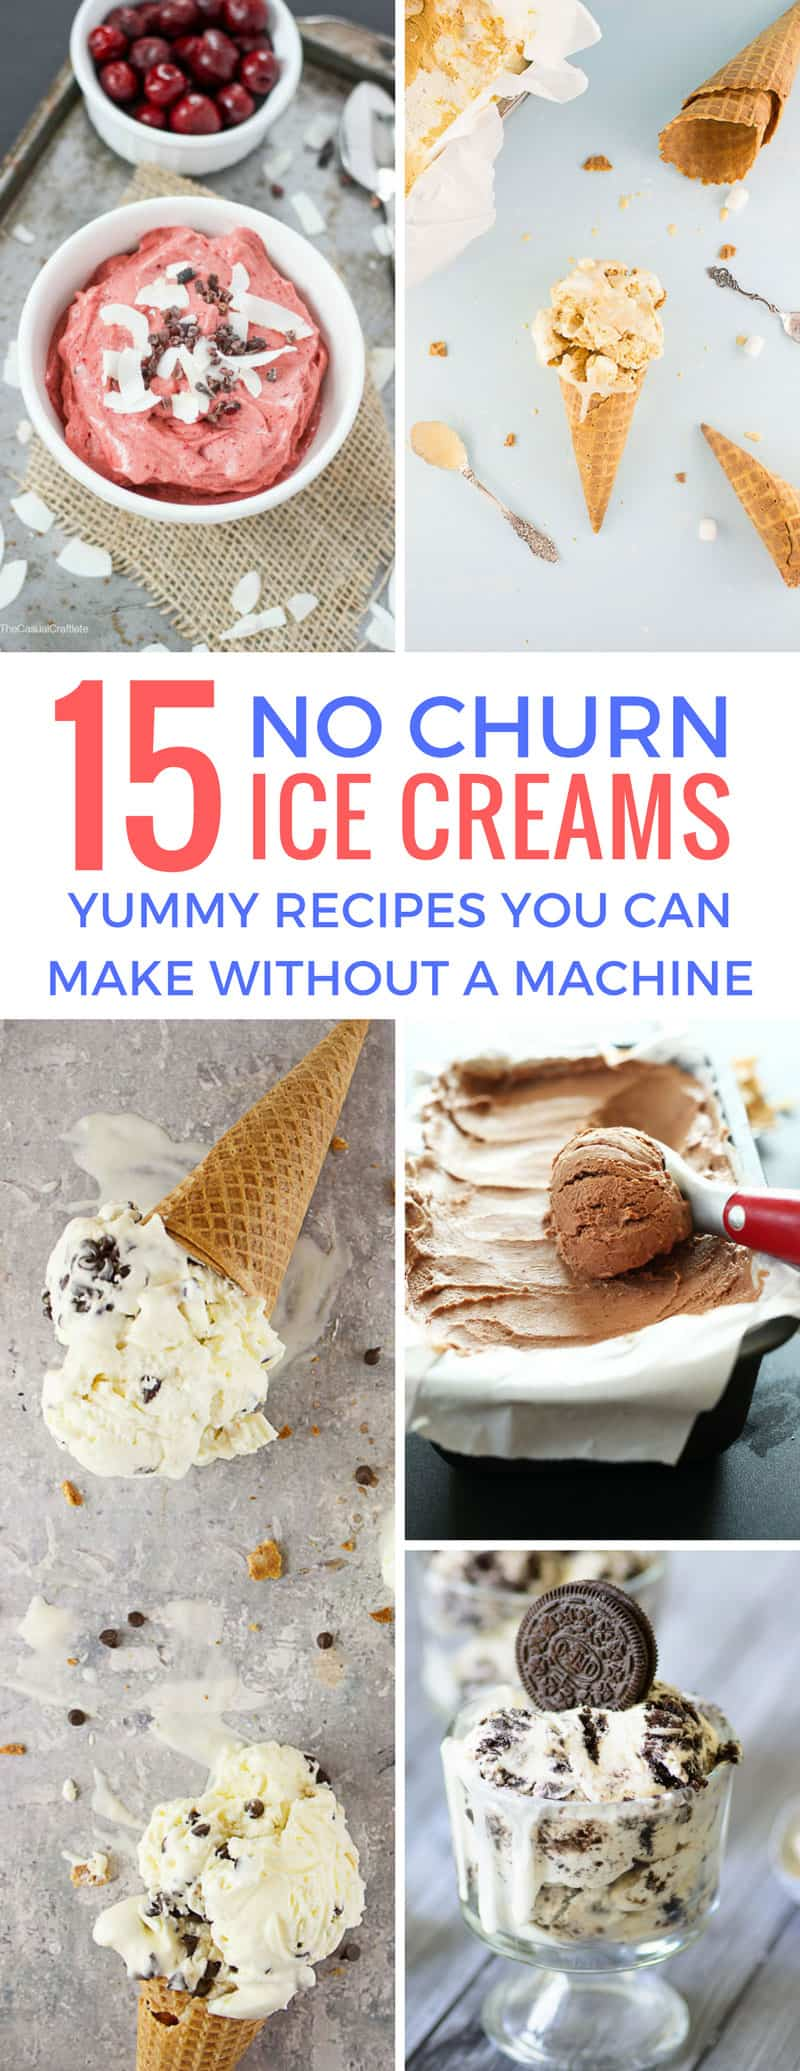 These no churn ice cream recipes are so easy to make and it's great that we don't need a machine to make them!